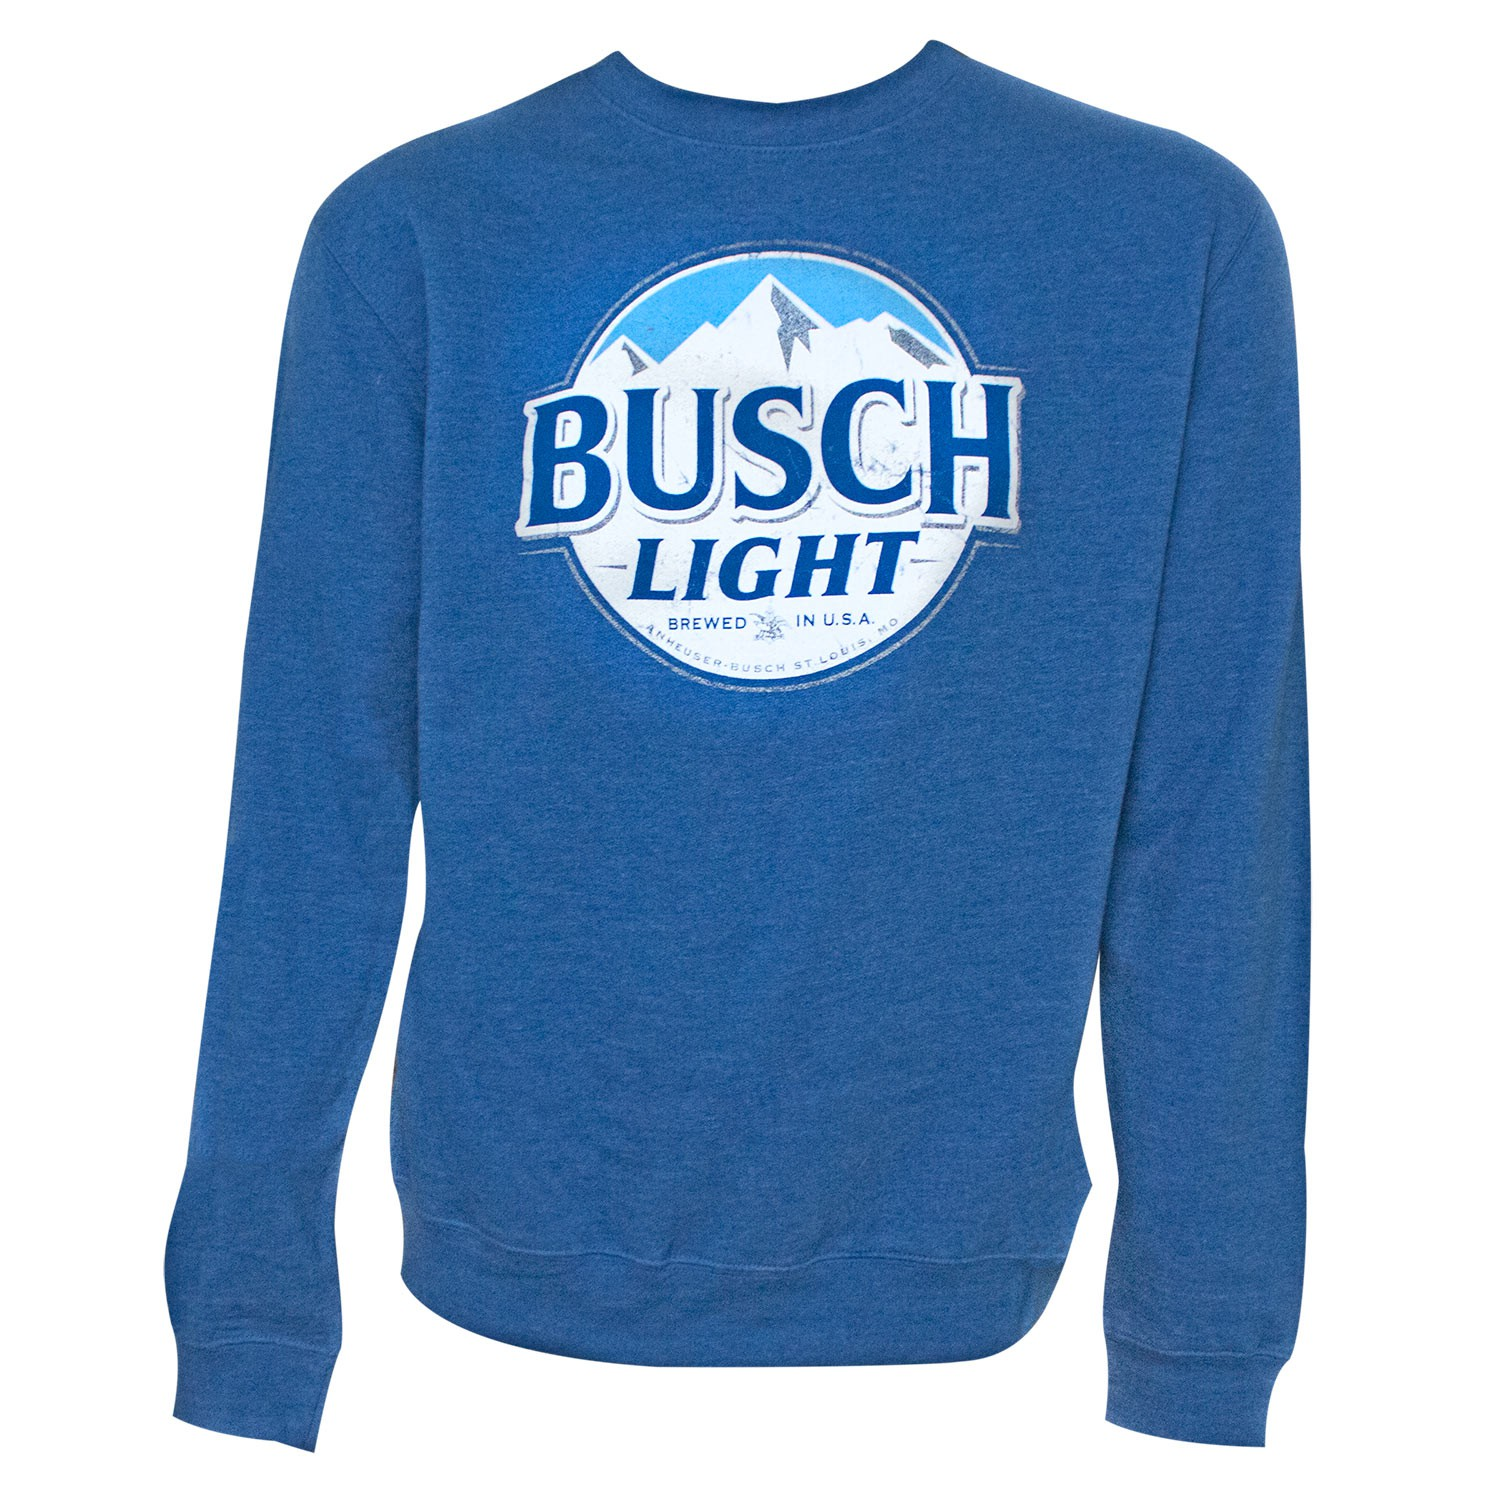 Busch Light Beer Logo Men's Royal Blue Crewneck Sweatshirt